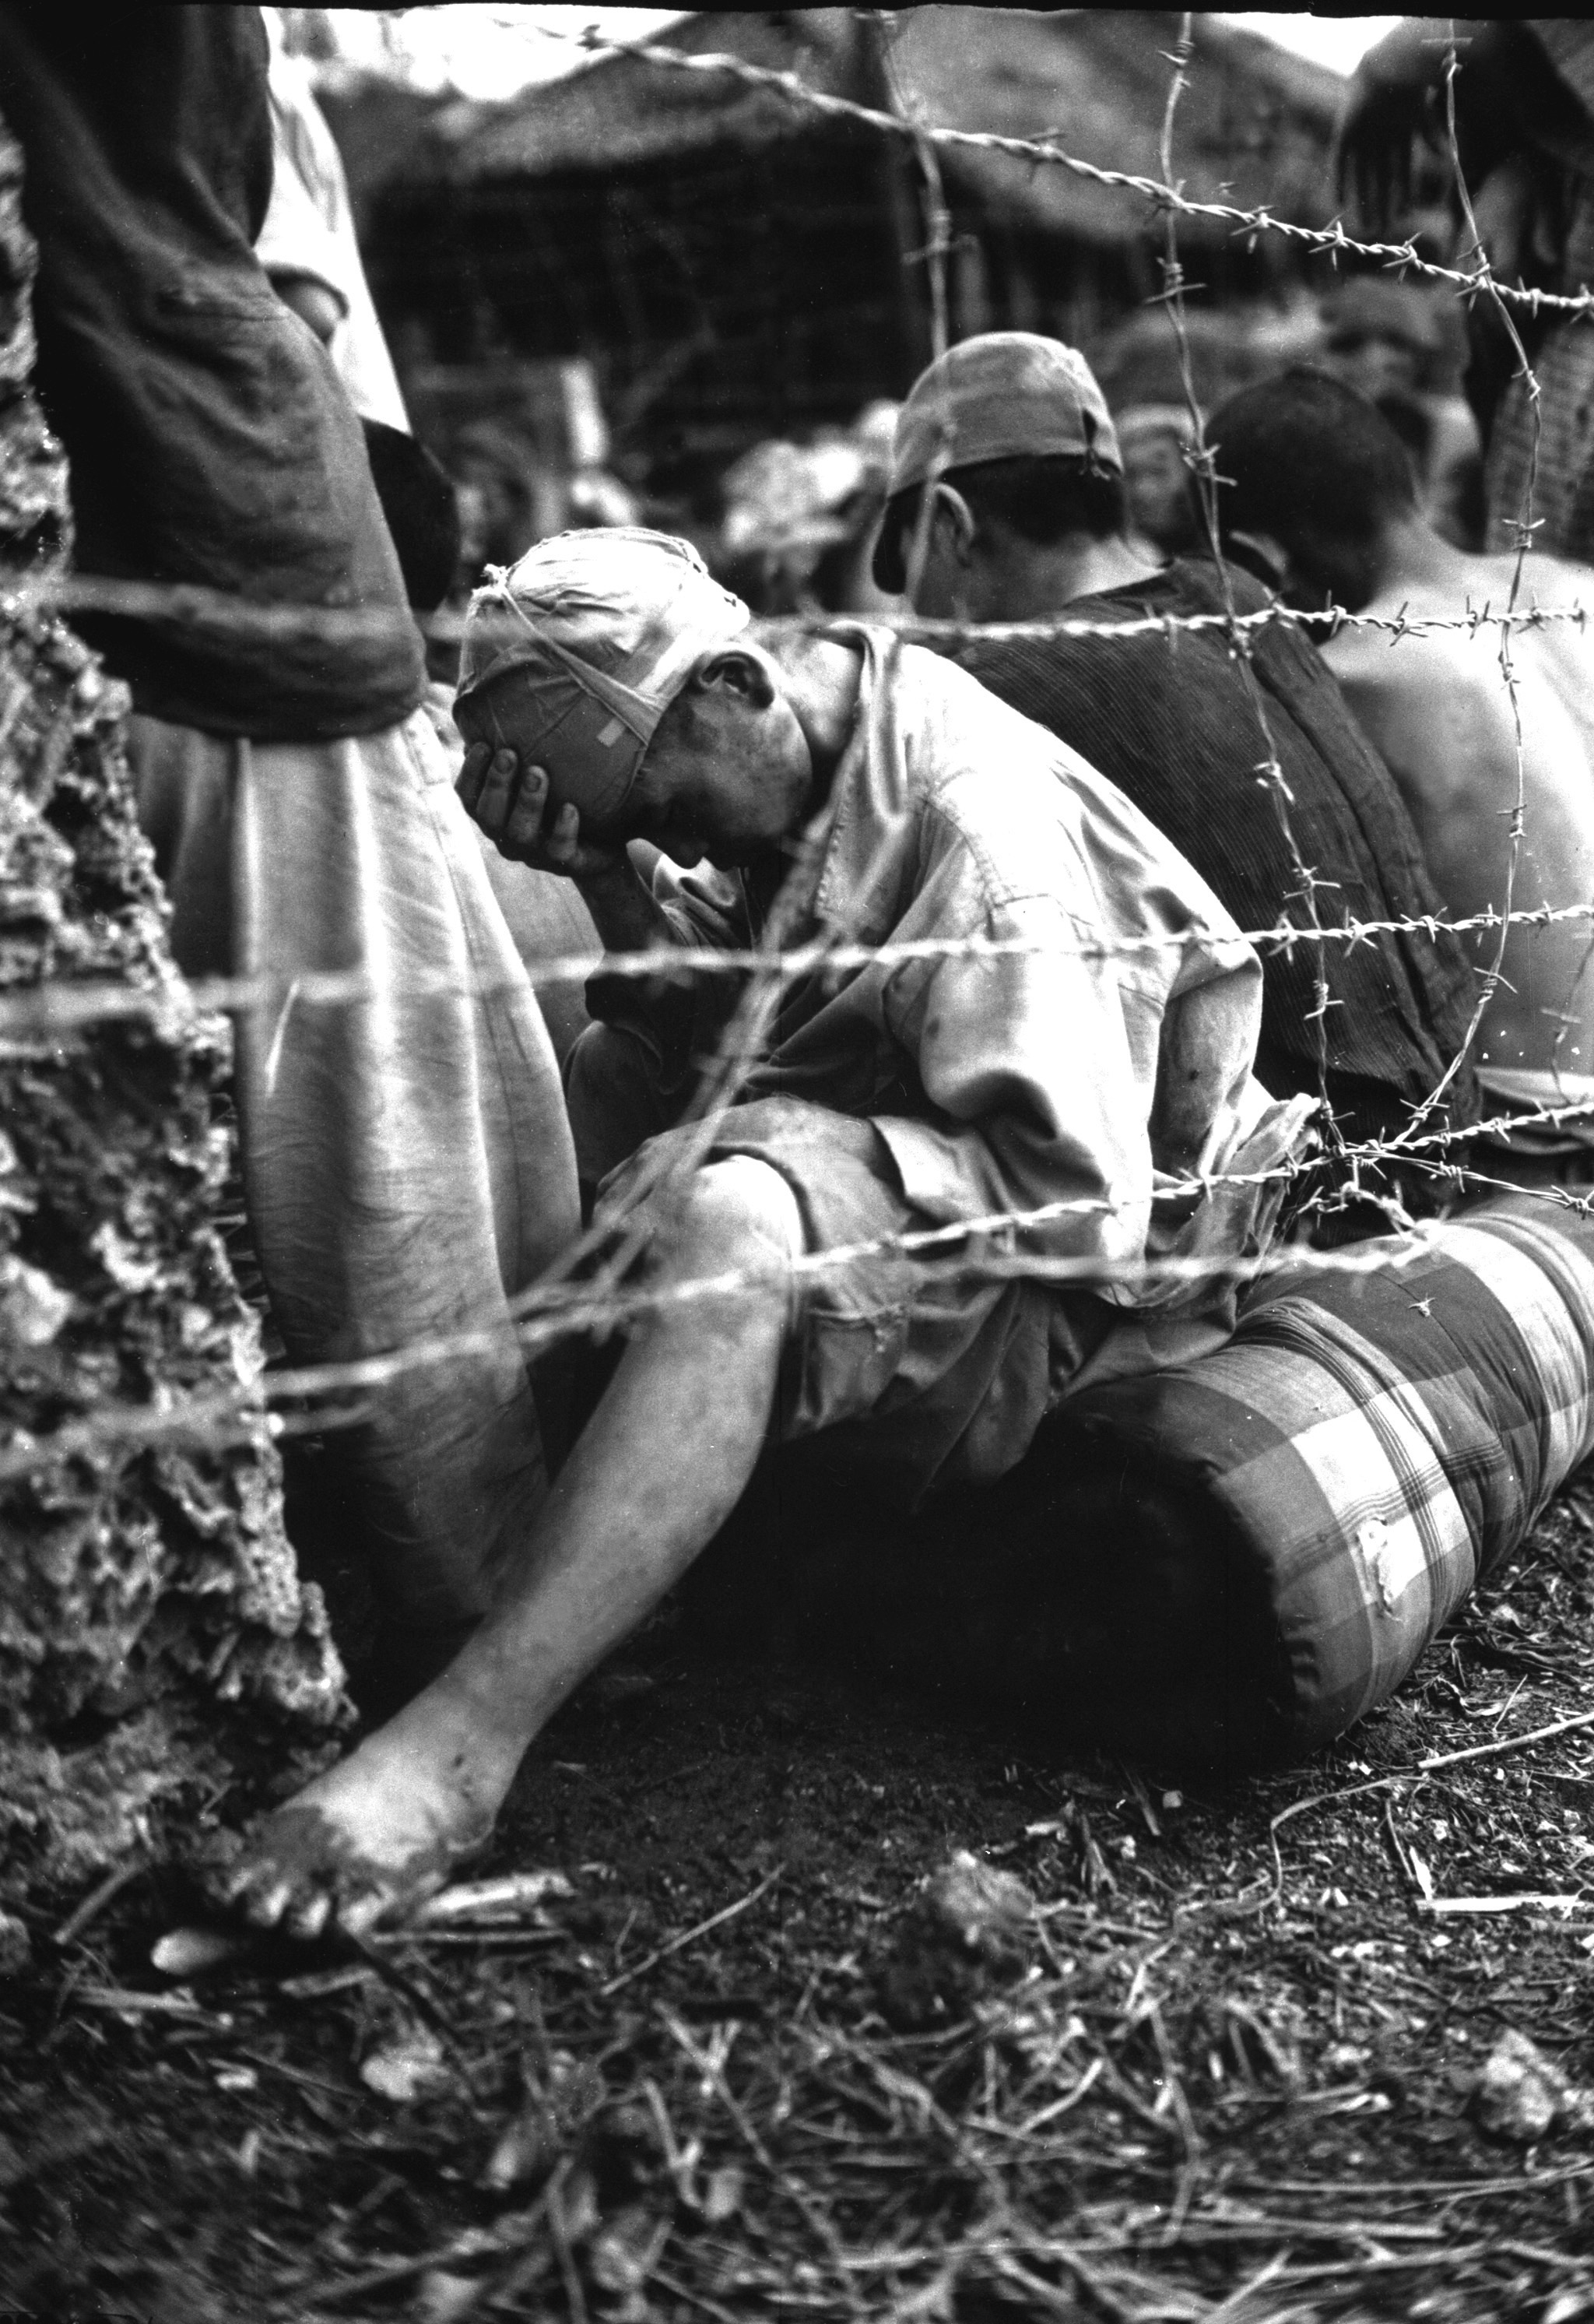 Japanese prisoners of war in World War II - Wikipedia